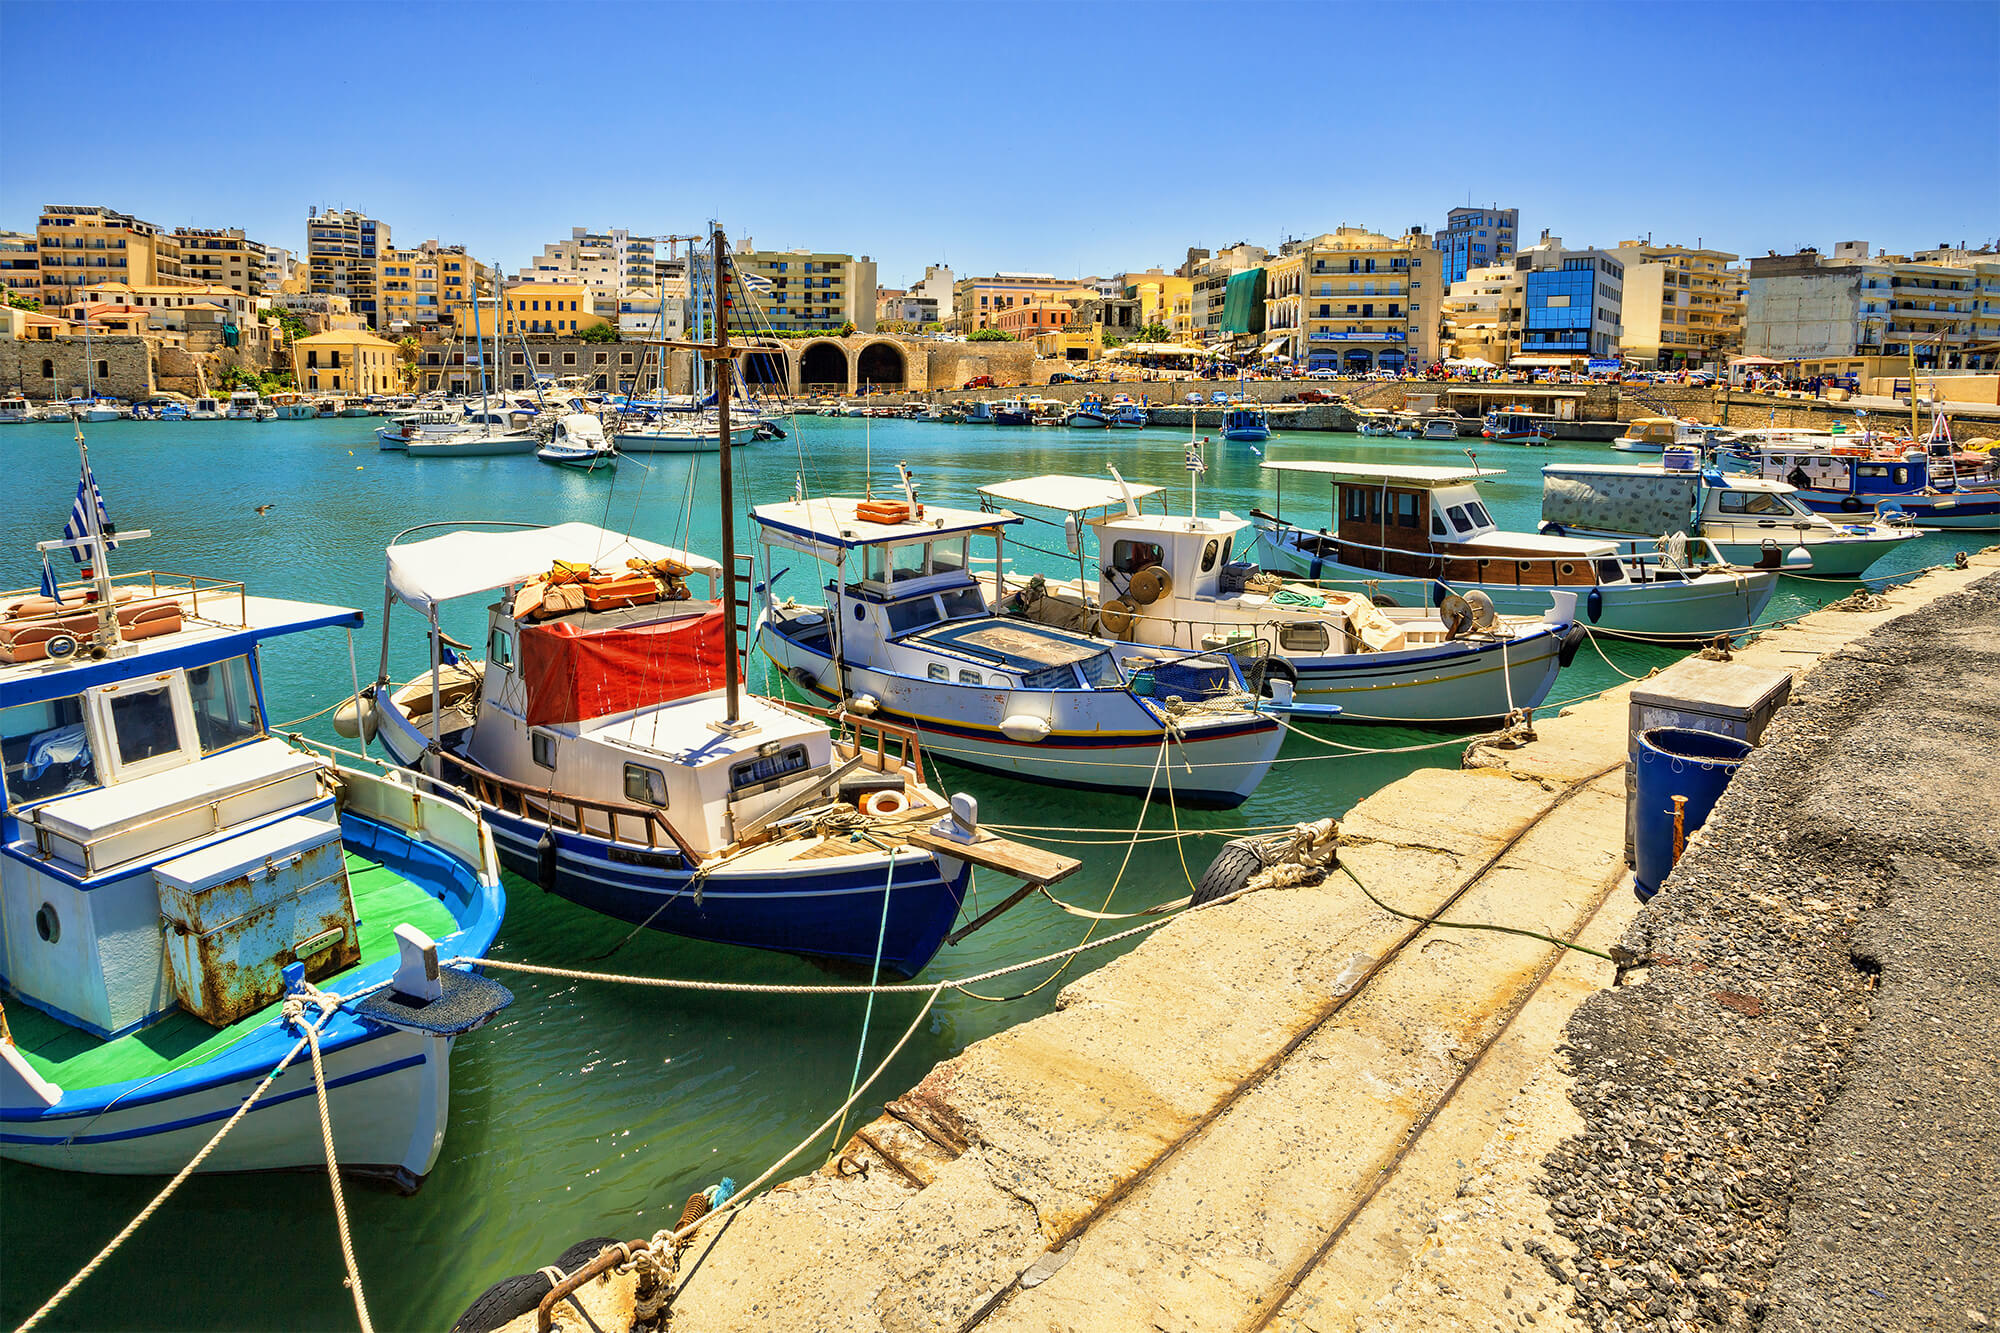 Color photo of boats docked in a port on the Greek island of Crete